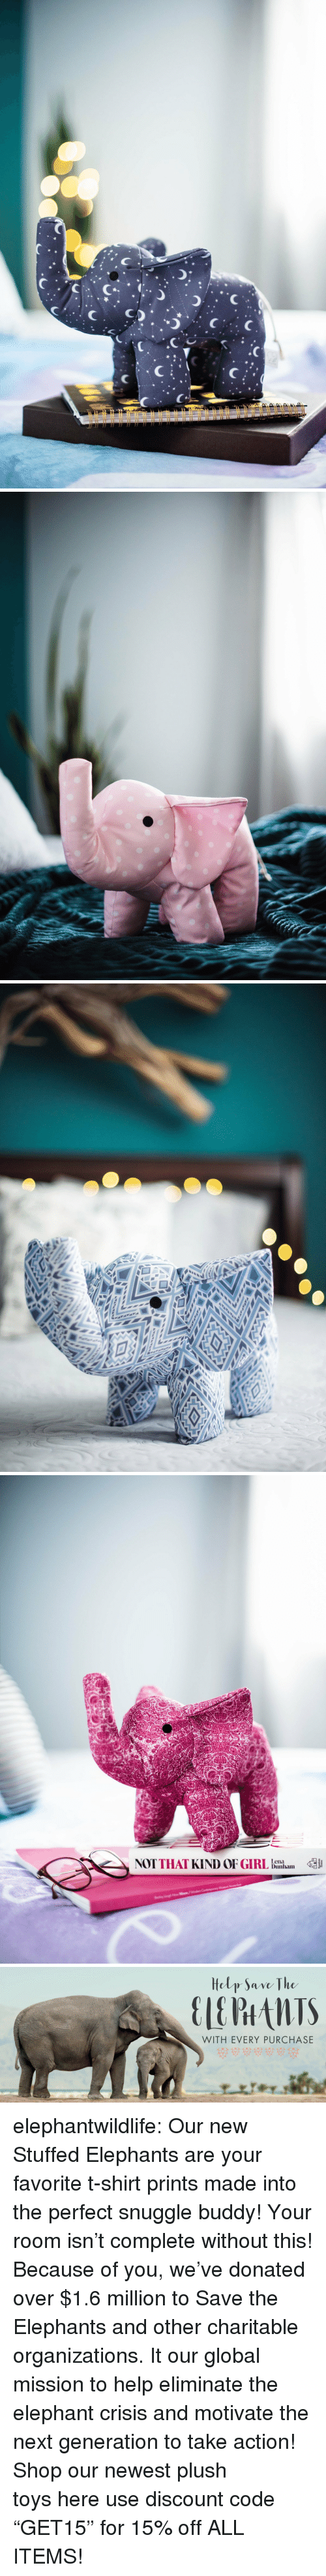 "Lena: Lena  NT THAT KIND OF GIRL Dunham   Hely Save The  WITH EVERY PURCHASE elephantwildlife:   Our new Stuffed Elephants are your favorite t-shirt prints made into the perfect snuggle buddy! Your room isn't complete without this!   Because of you, we've donated over $1.6 million to Save the Elephants and other charitable organizations. It our global mission to help eliminate the elephant crisis and motivate the next generation to take action! Shop our newest plush toys here   use discount code ""GET15"" for 15% off ALL ITEMS!"